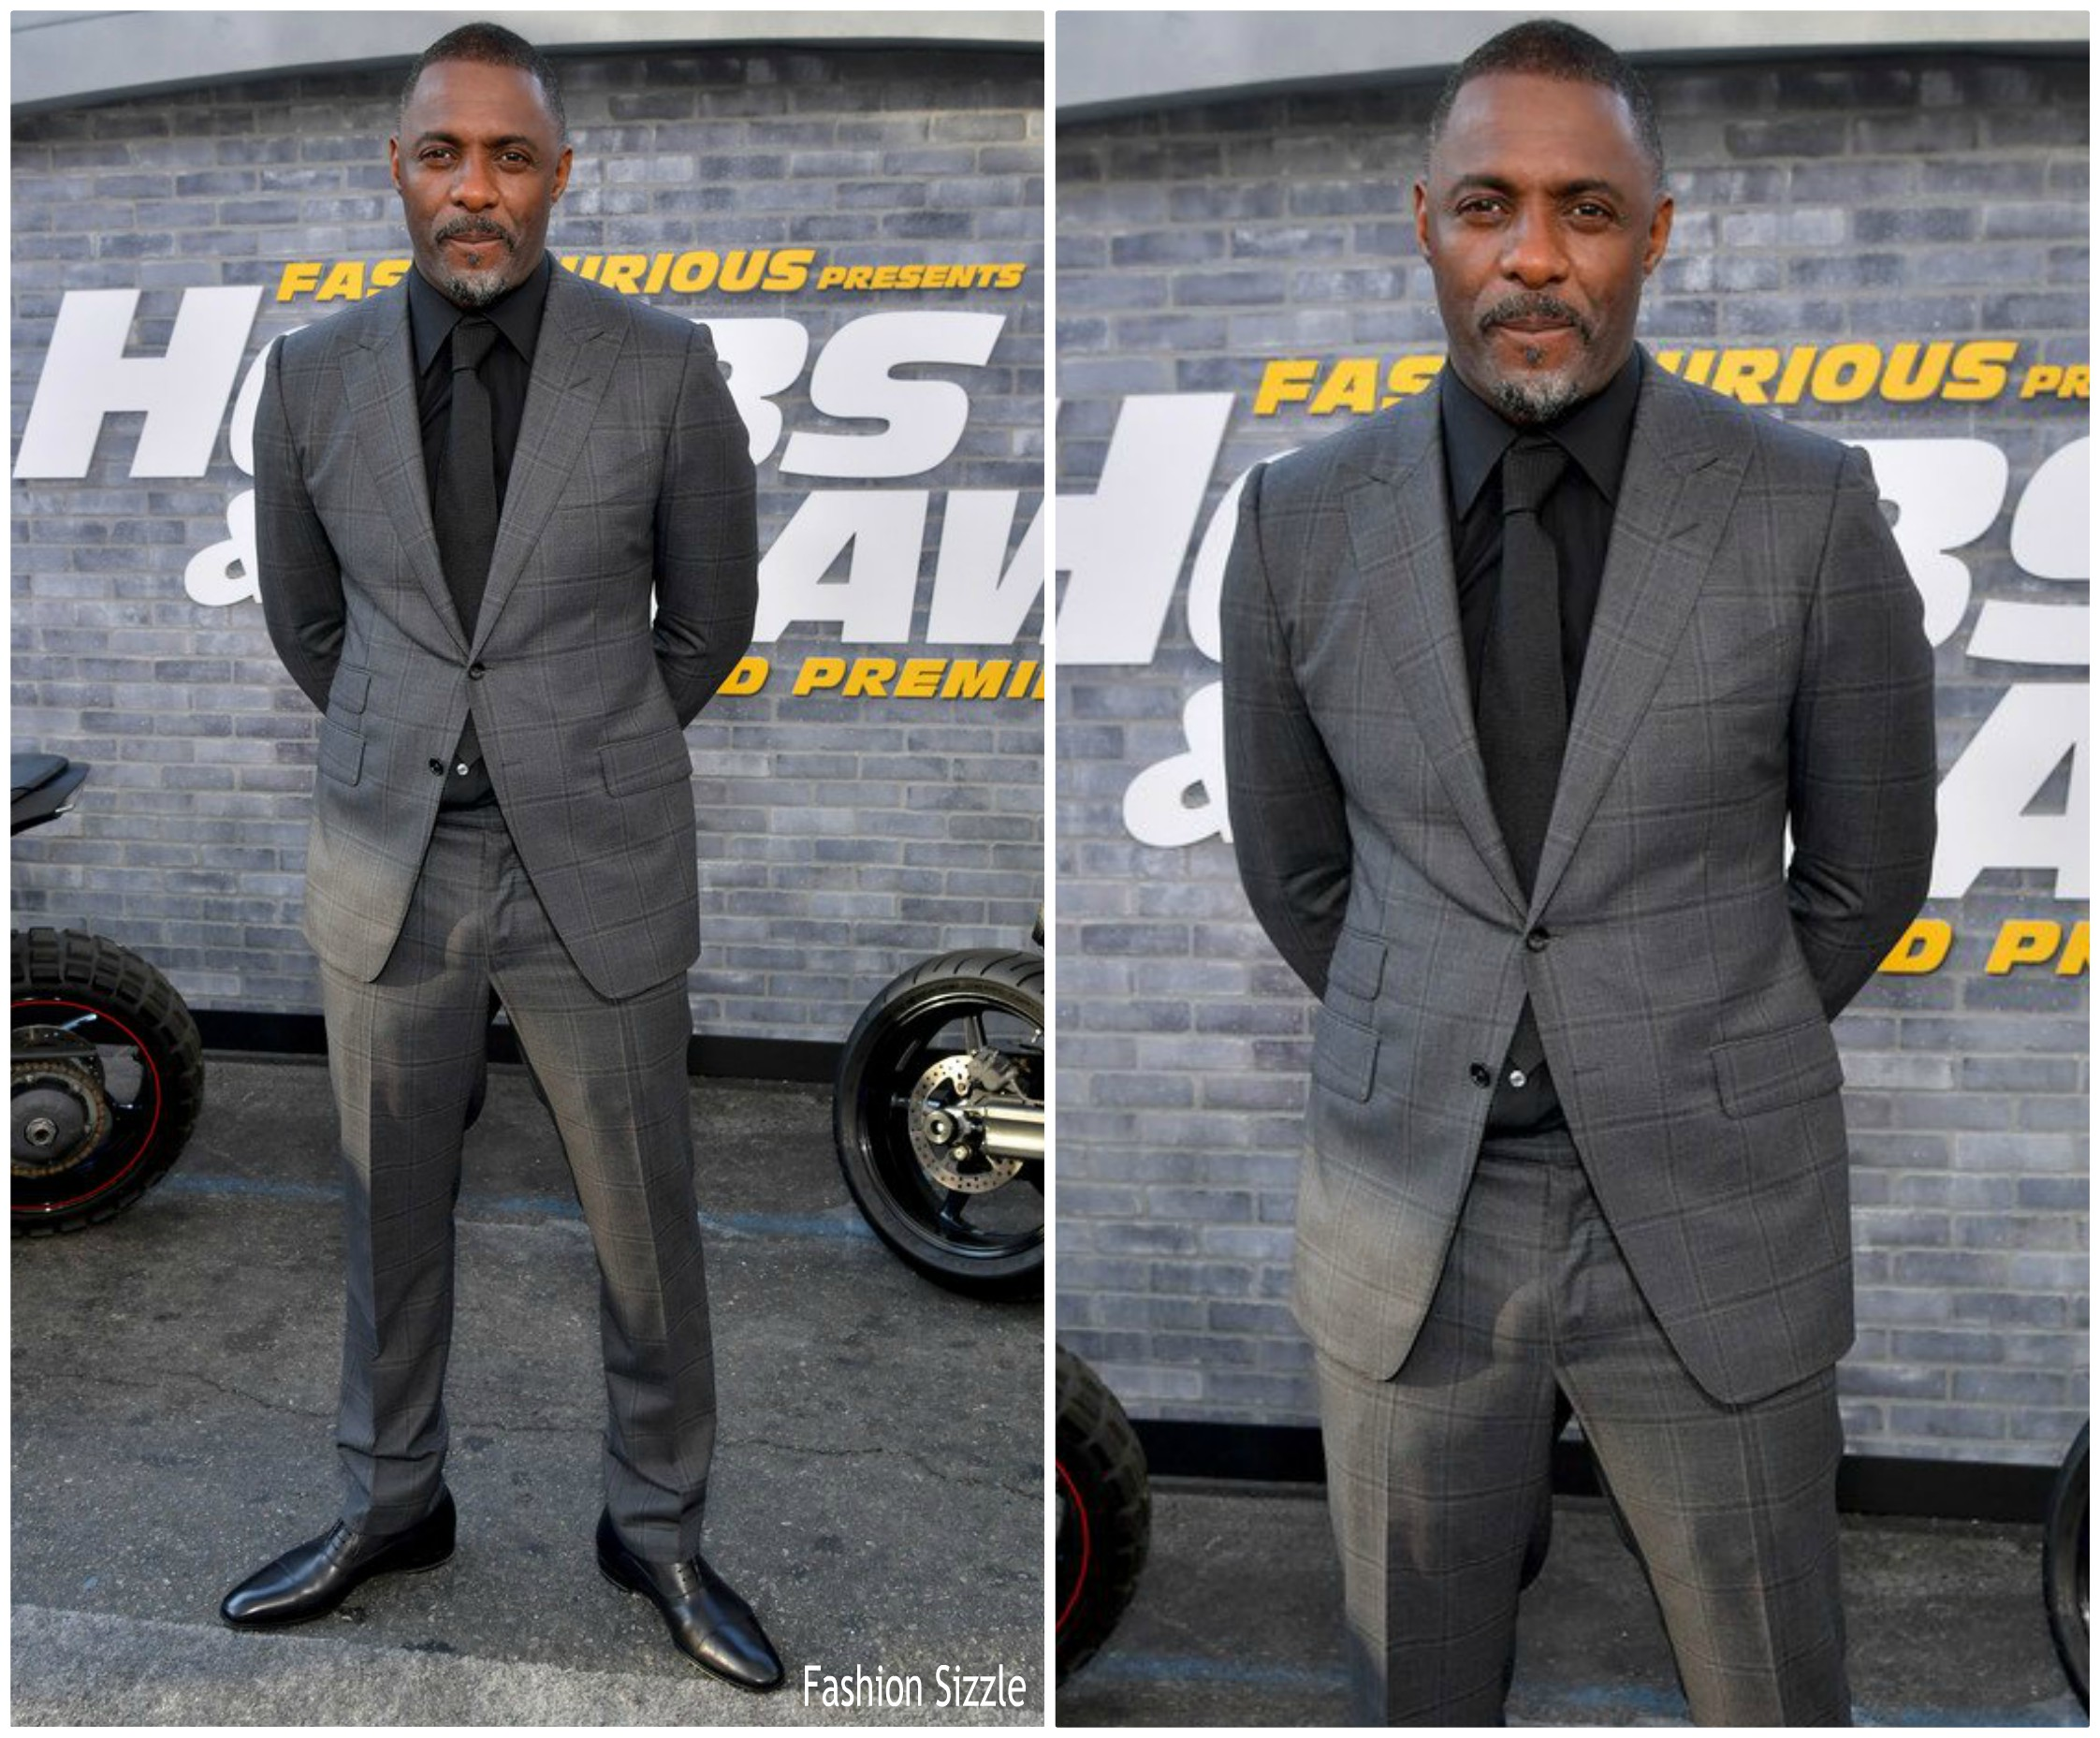 idris-elba-in-tom-ford-fast-furiuos-presents-hobbs-shaw-la-premiere